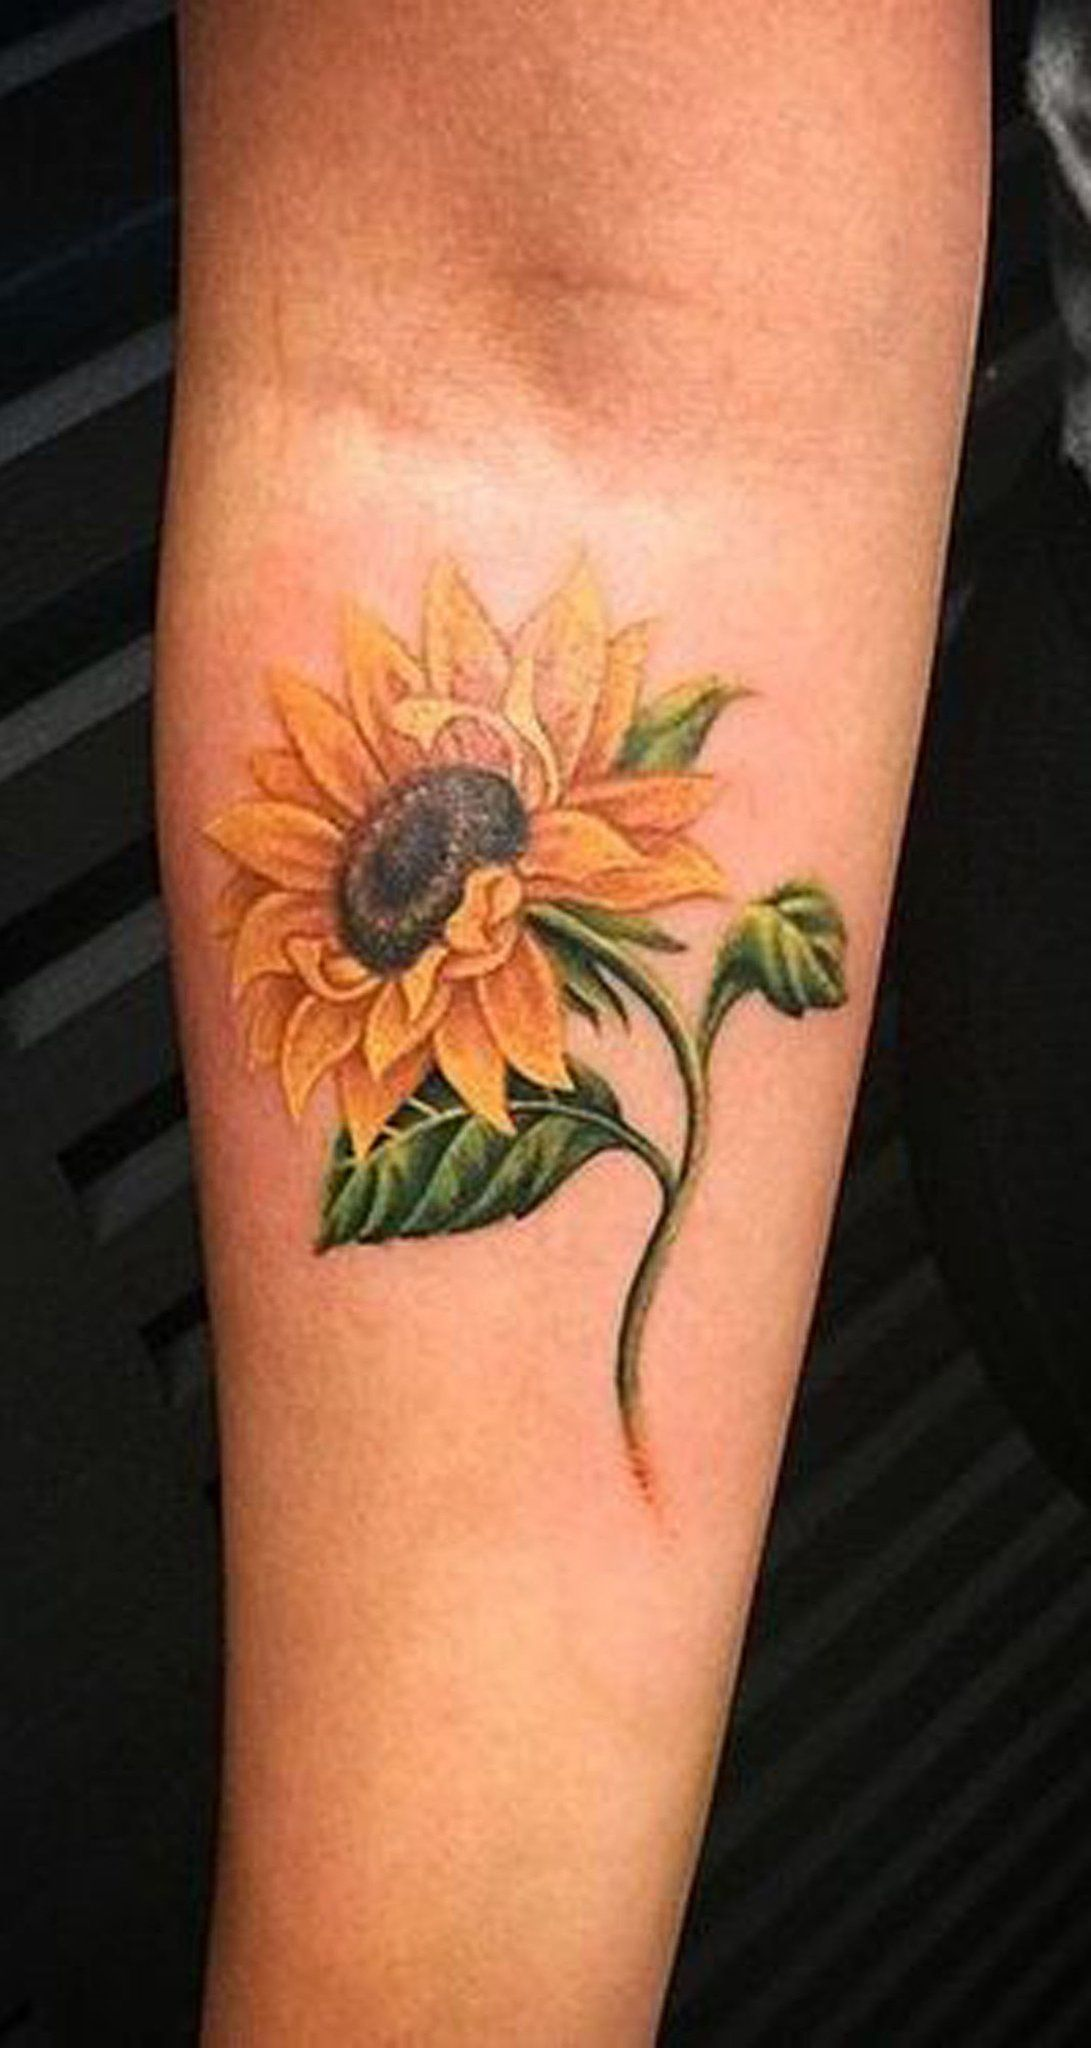 Small Sunflower Tattoo Meaning: 20 Of The Most Boujee Sunflower Tattoo Ideas (With Images